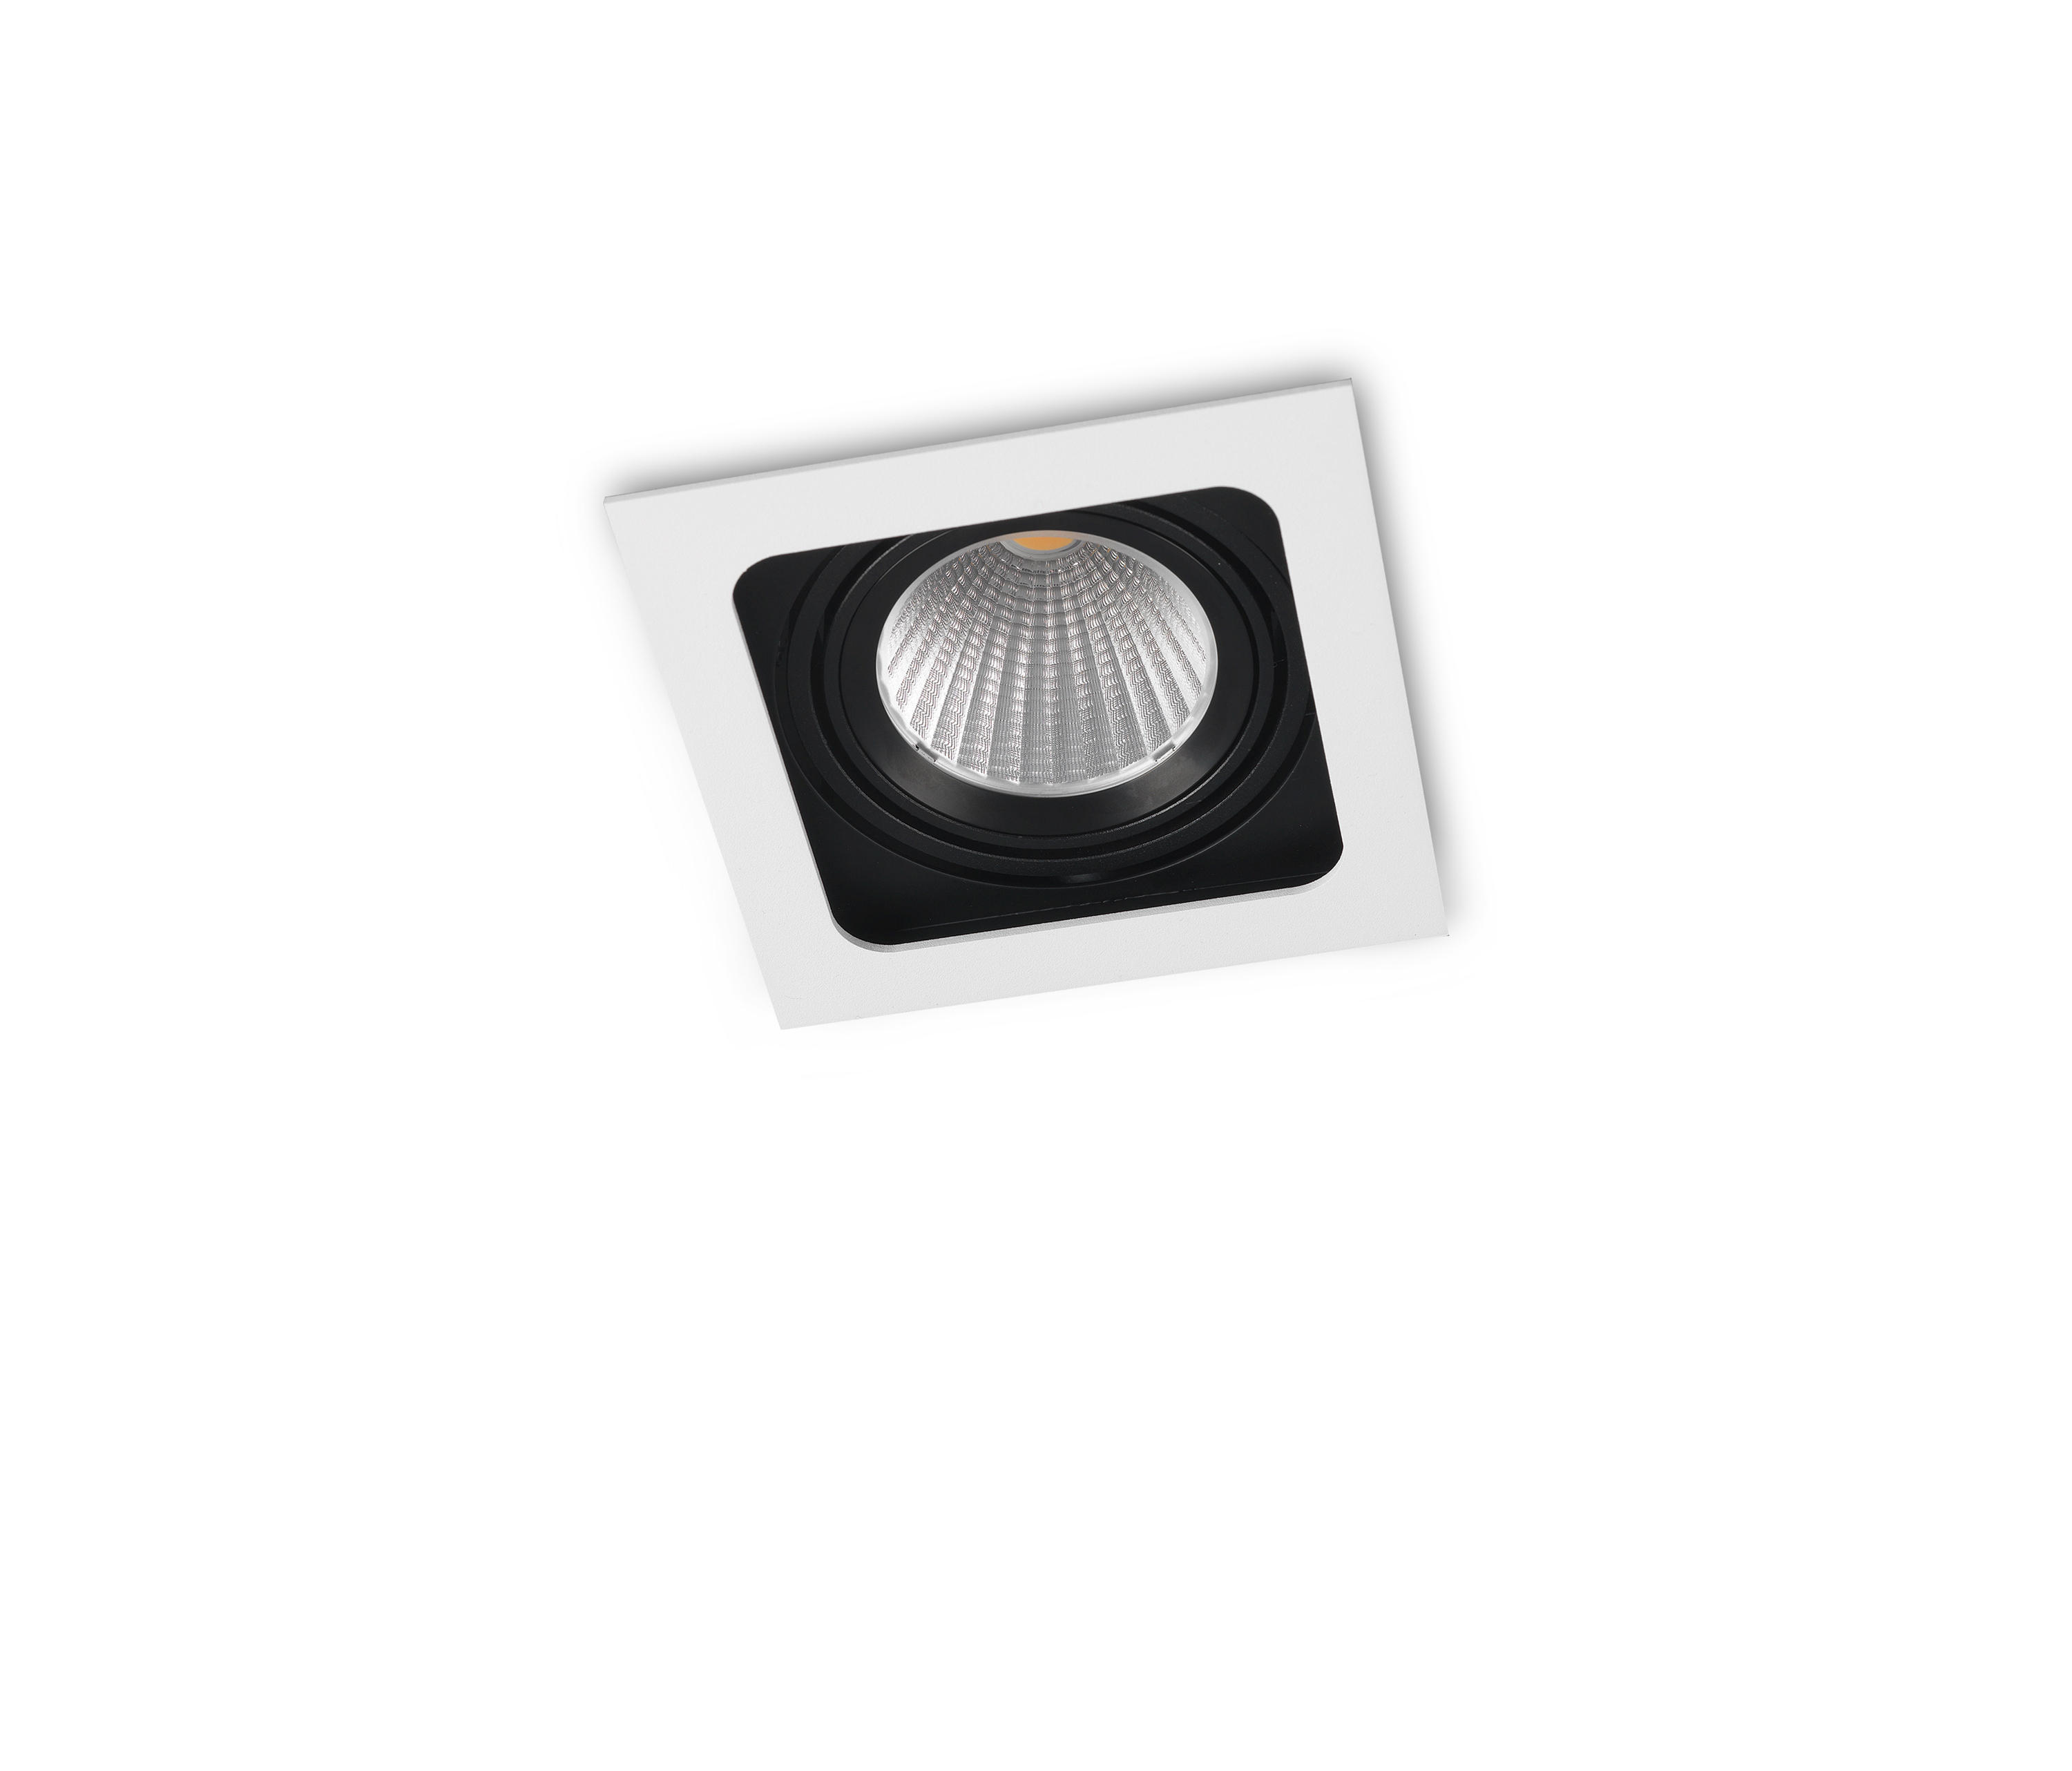 PICCOLO FRAME DEEP 1X COB LED - Recessed ceiling lights from Orbit ...